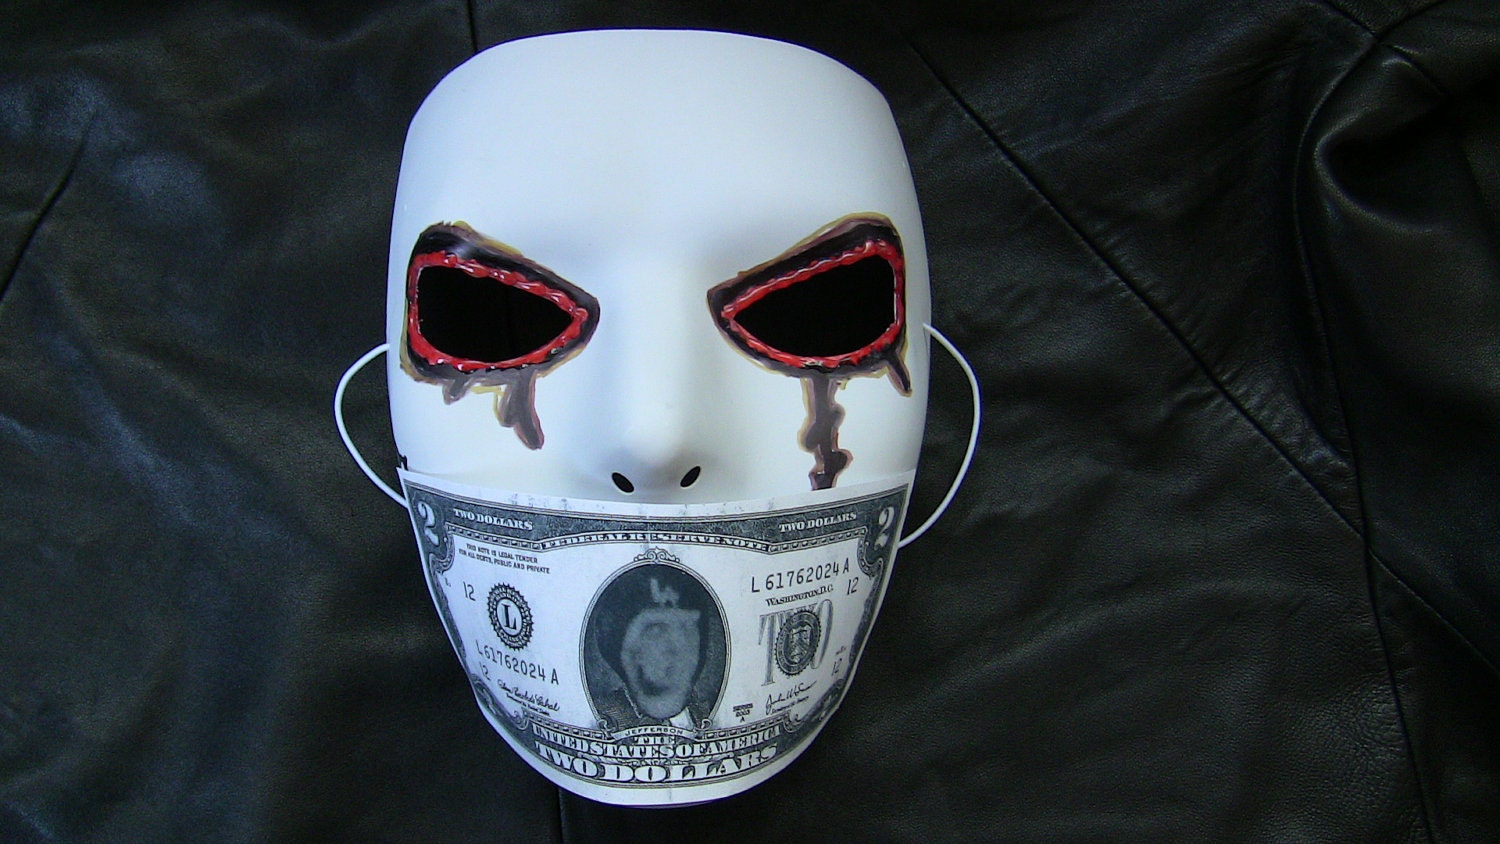 Suggestions Online Images of J Dog Hollywood Undead